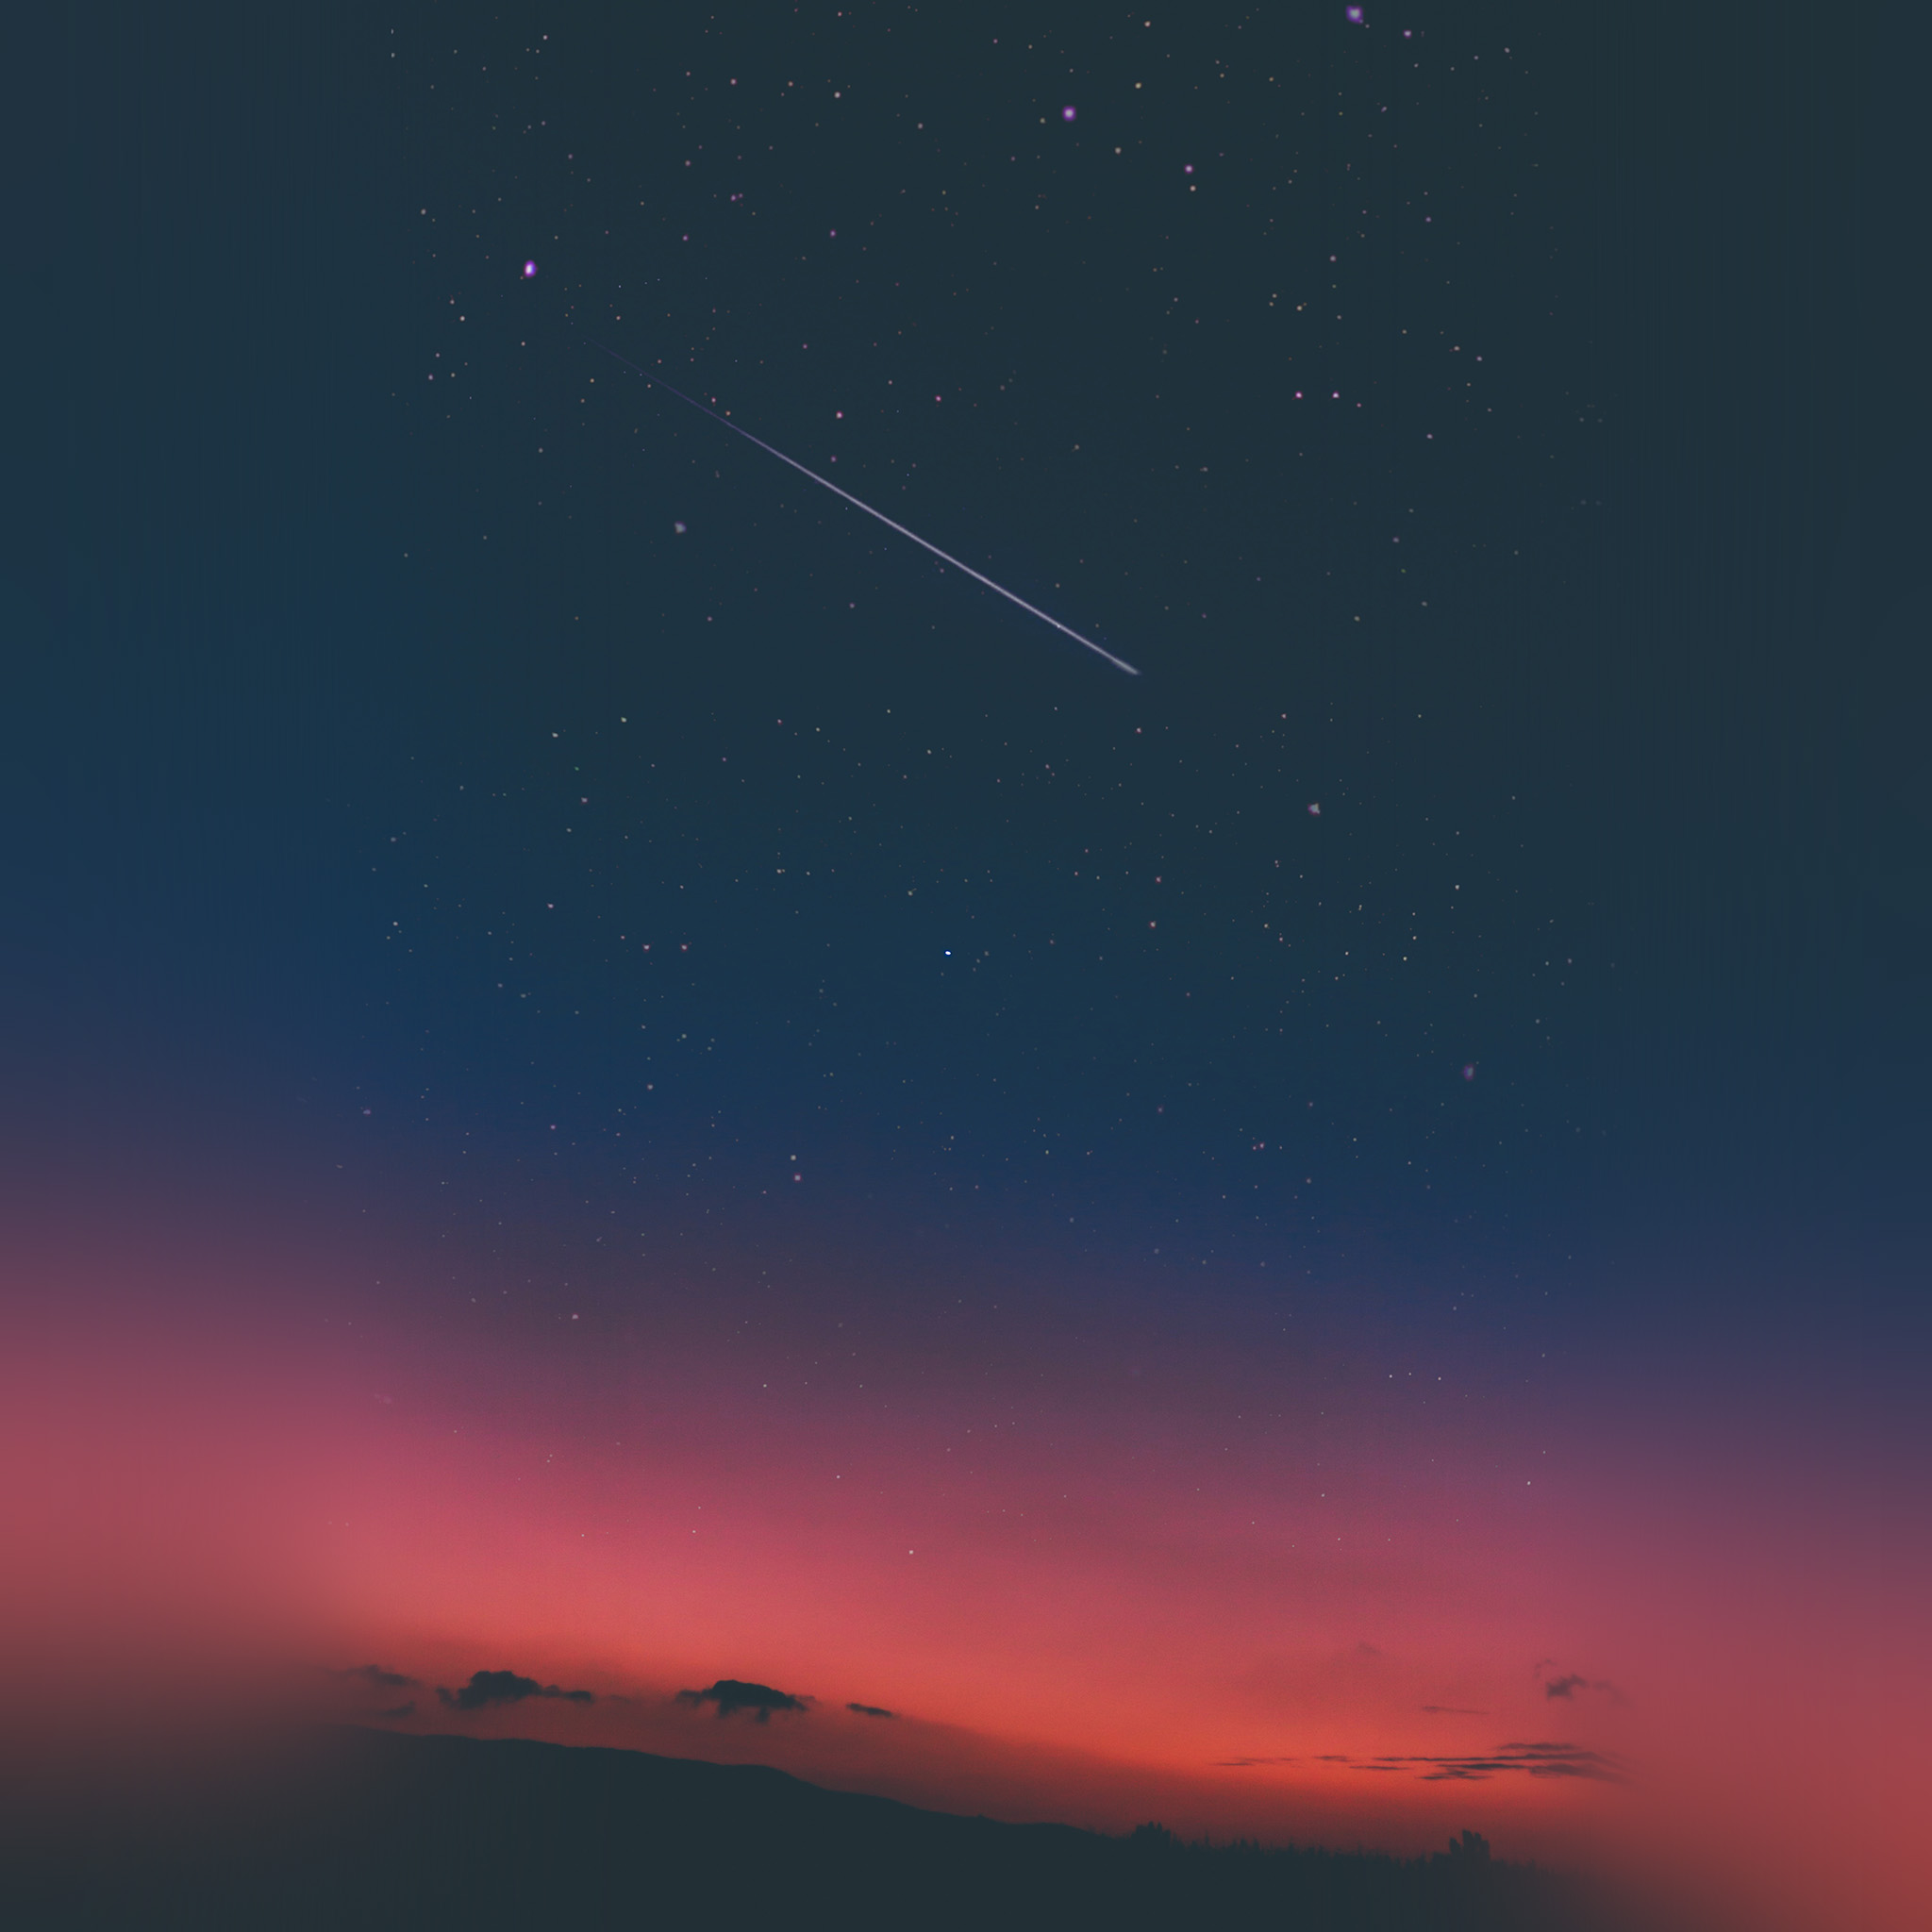 Iphone Wallpaper: Nw35-sky-sunset-night-blue-nature-wallpaper